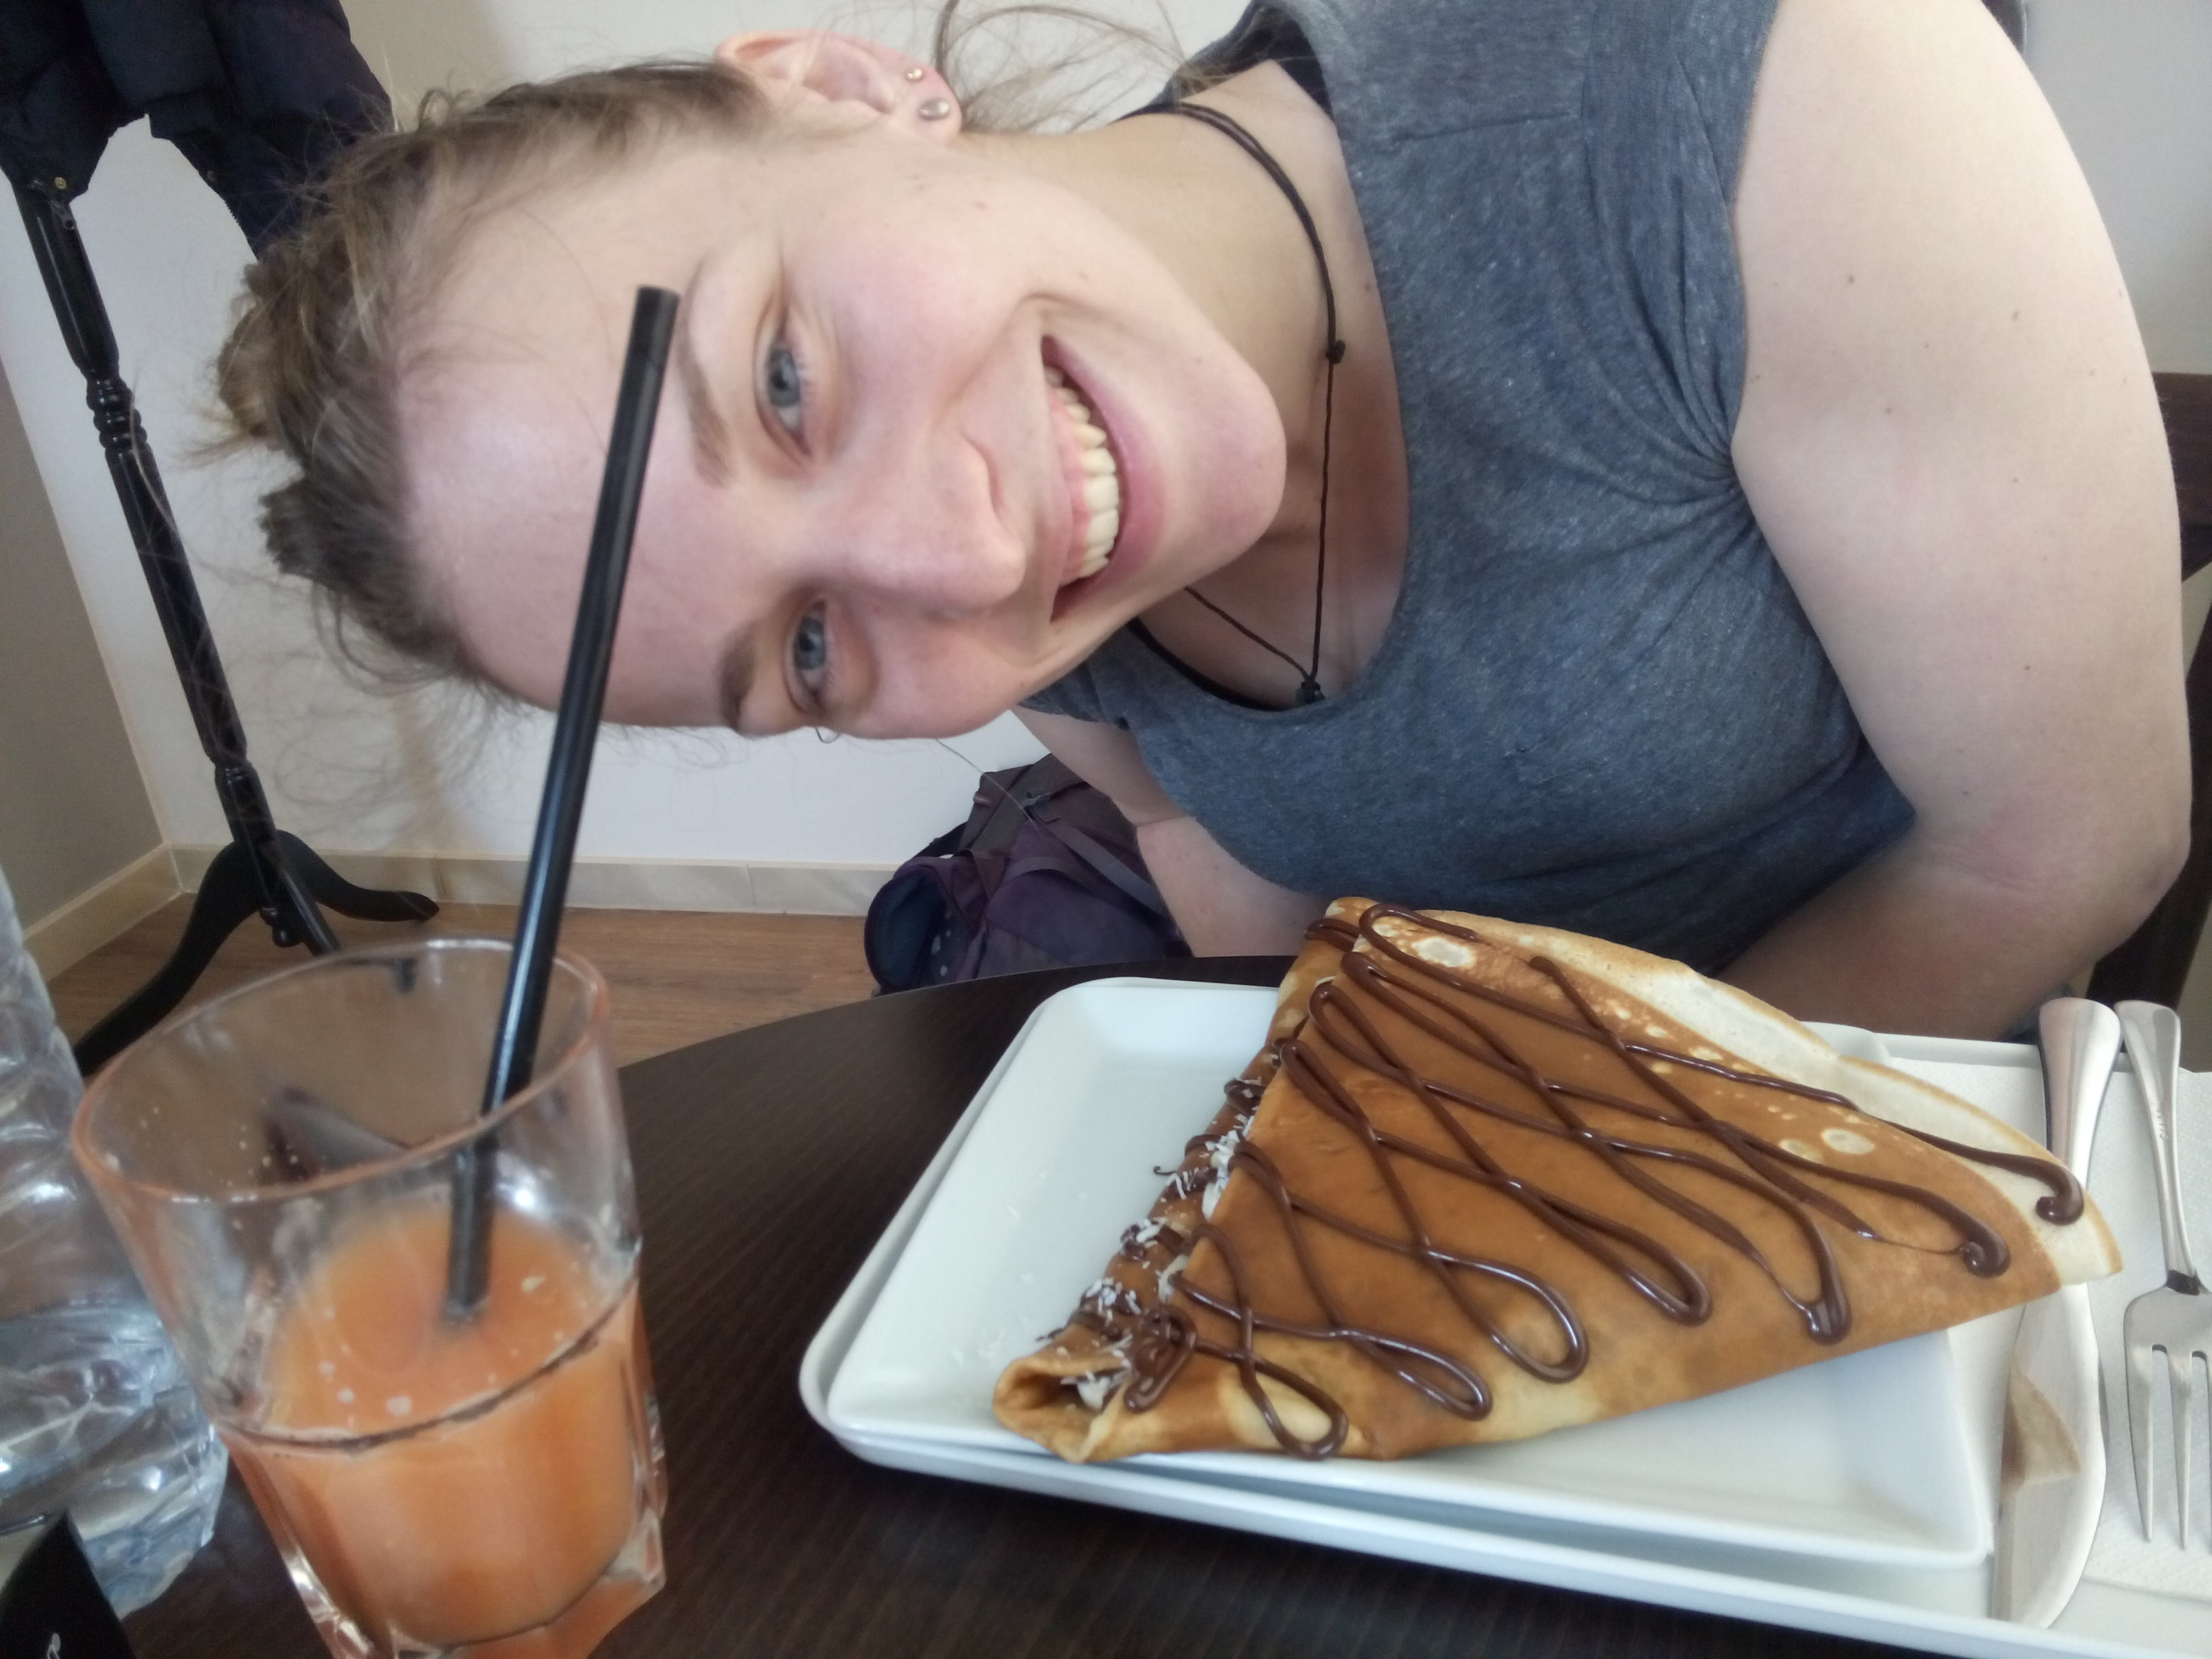 A woman in a grey tshirt leans sideways smiling over a crepe on aplate and a glass of grapefruit juice with a straw